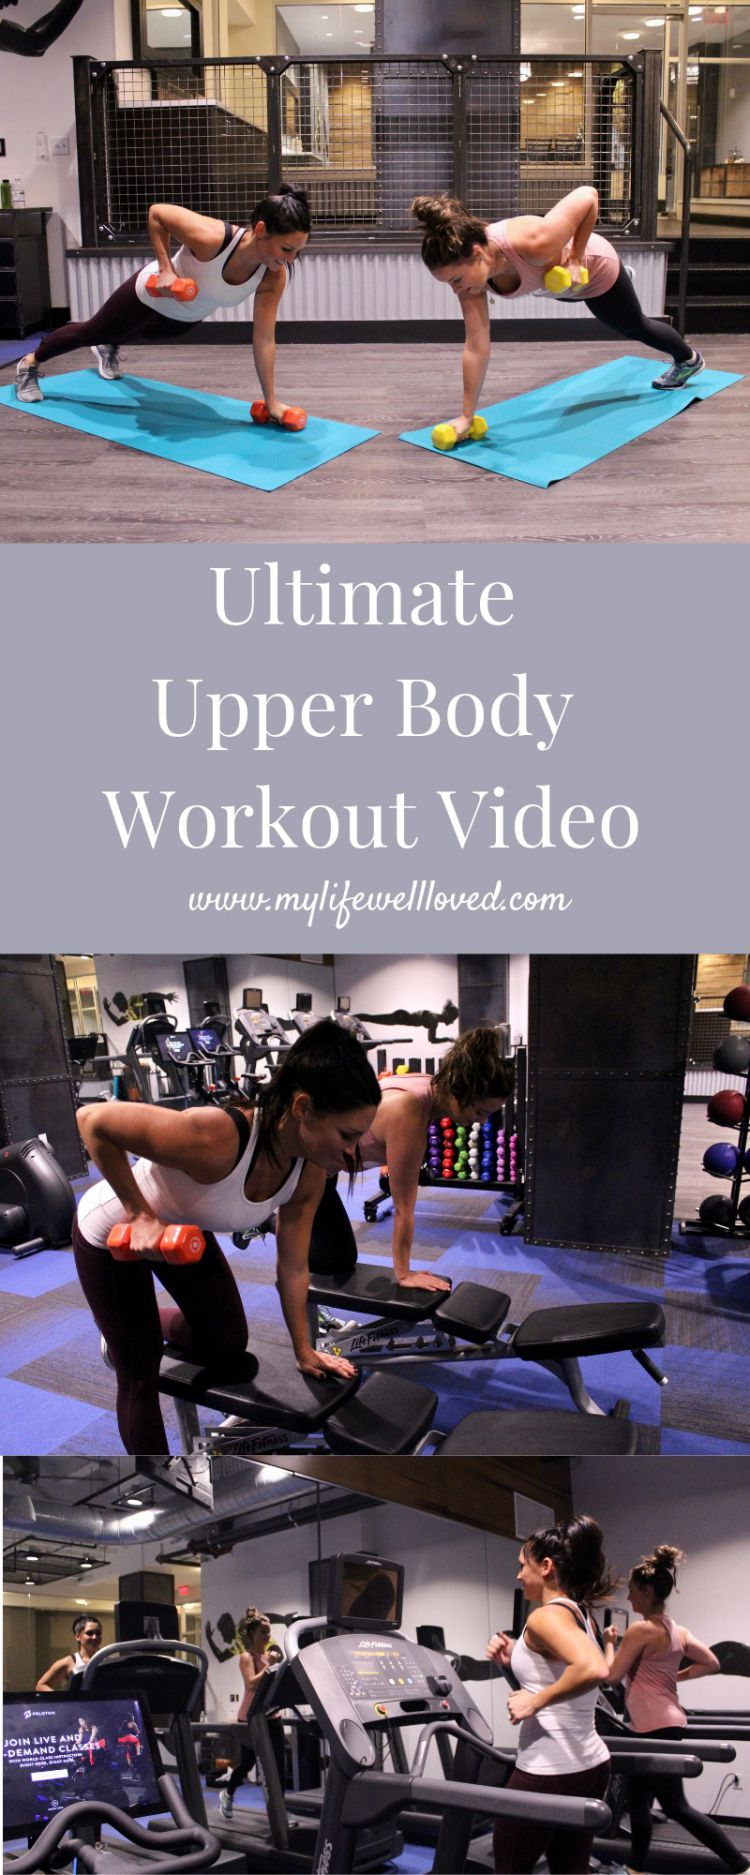 The Ultimate Upper Body Workout Video at Home or Gym by Healthy Life + Style Blogger, My Life Well Loved // #homeworkout #upperbodyworkout #whole30workout